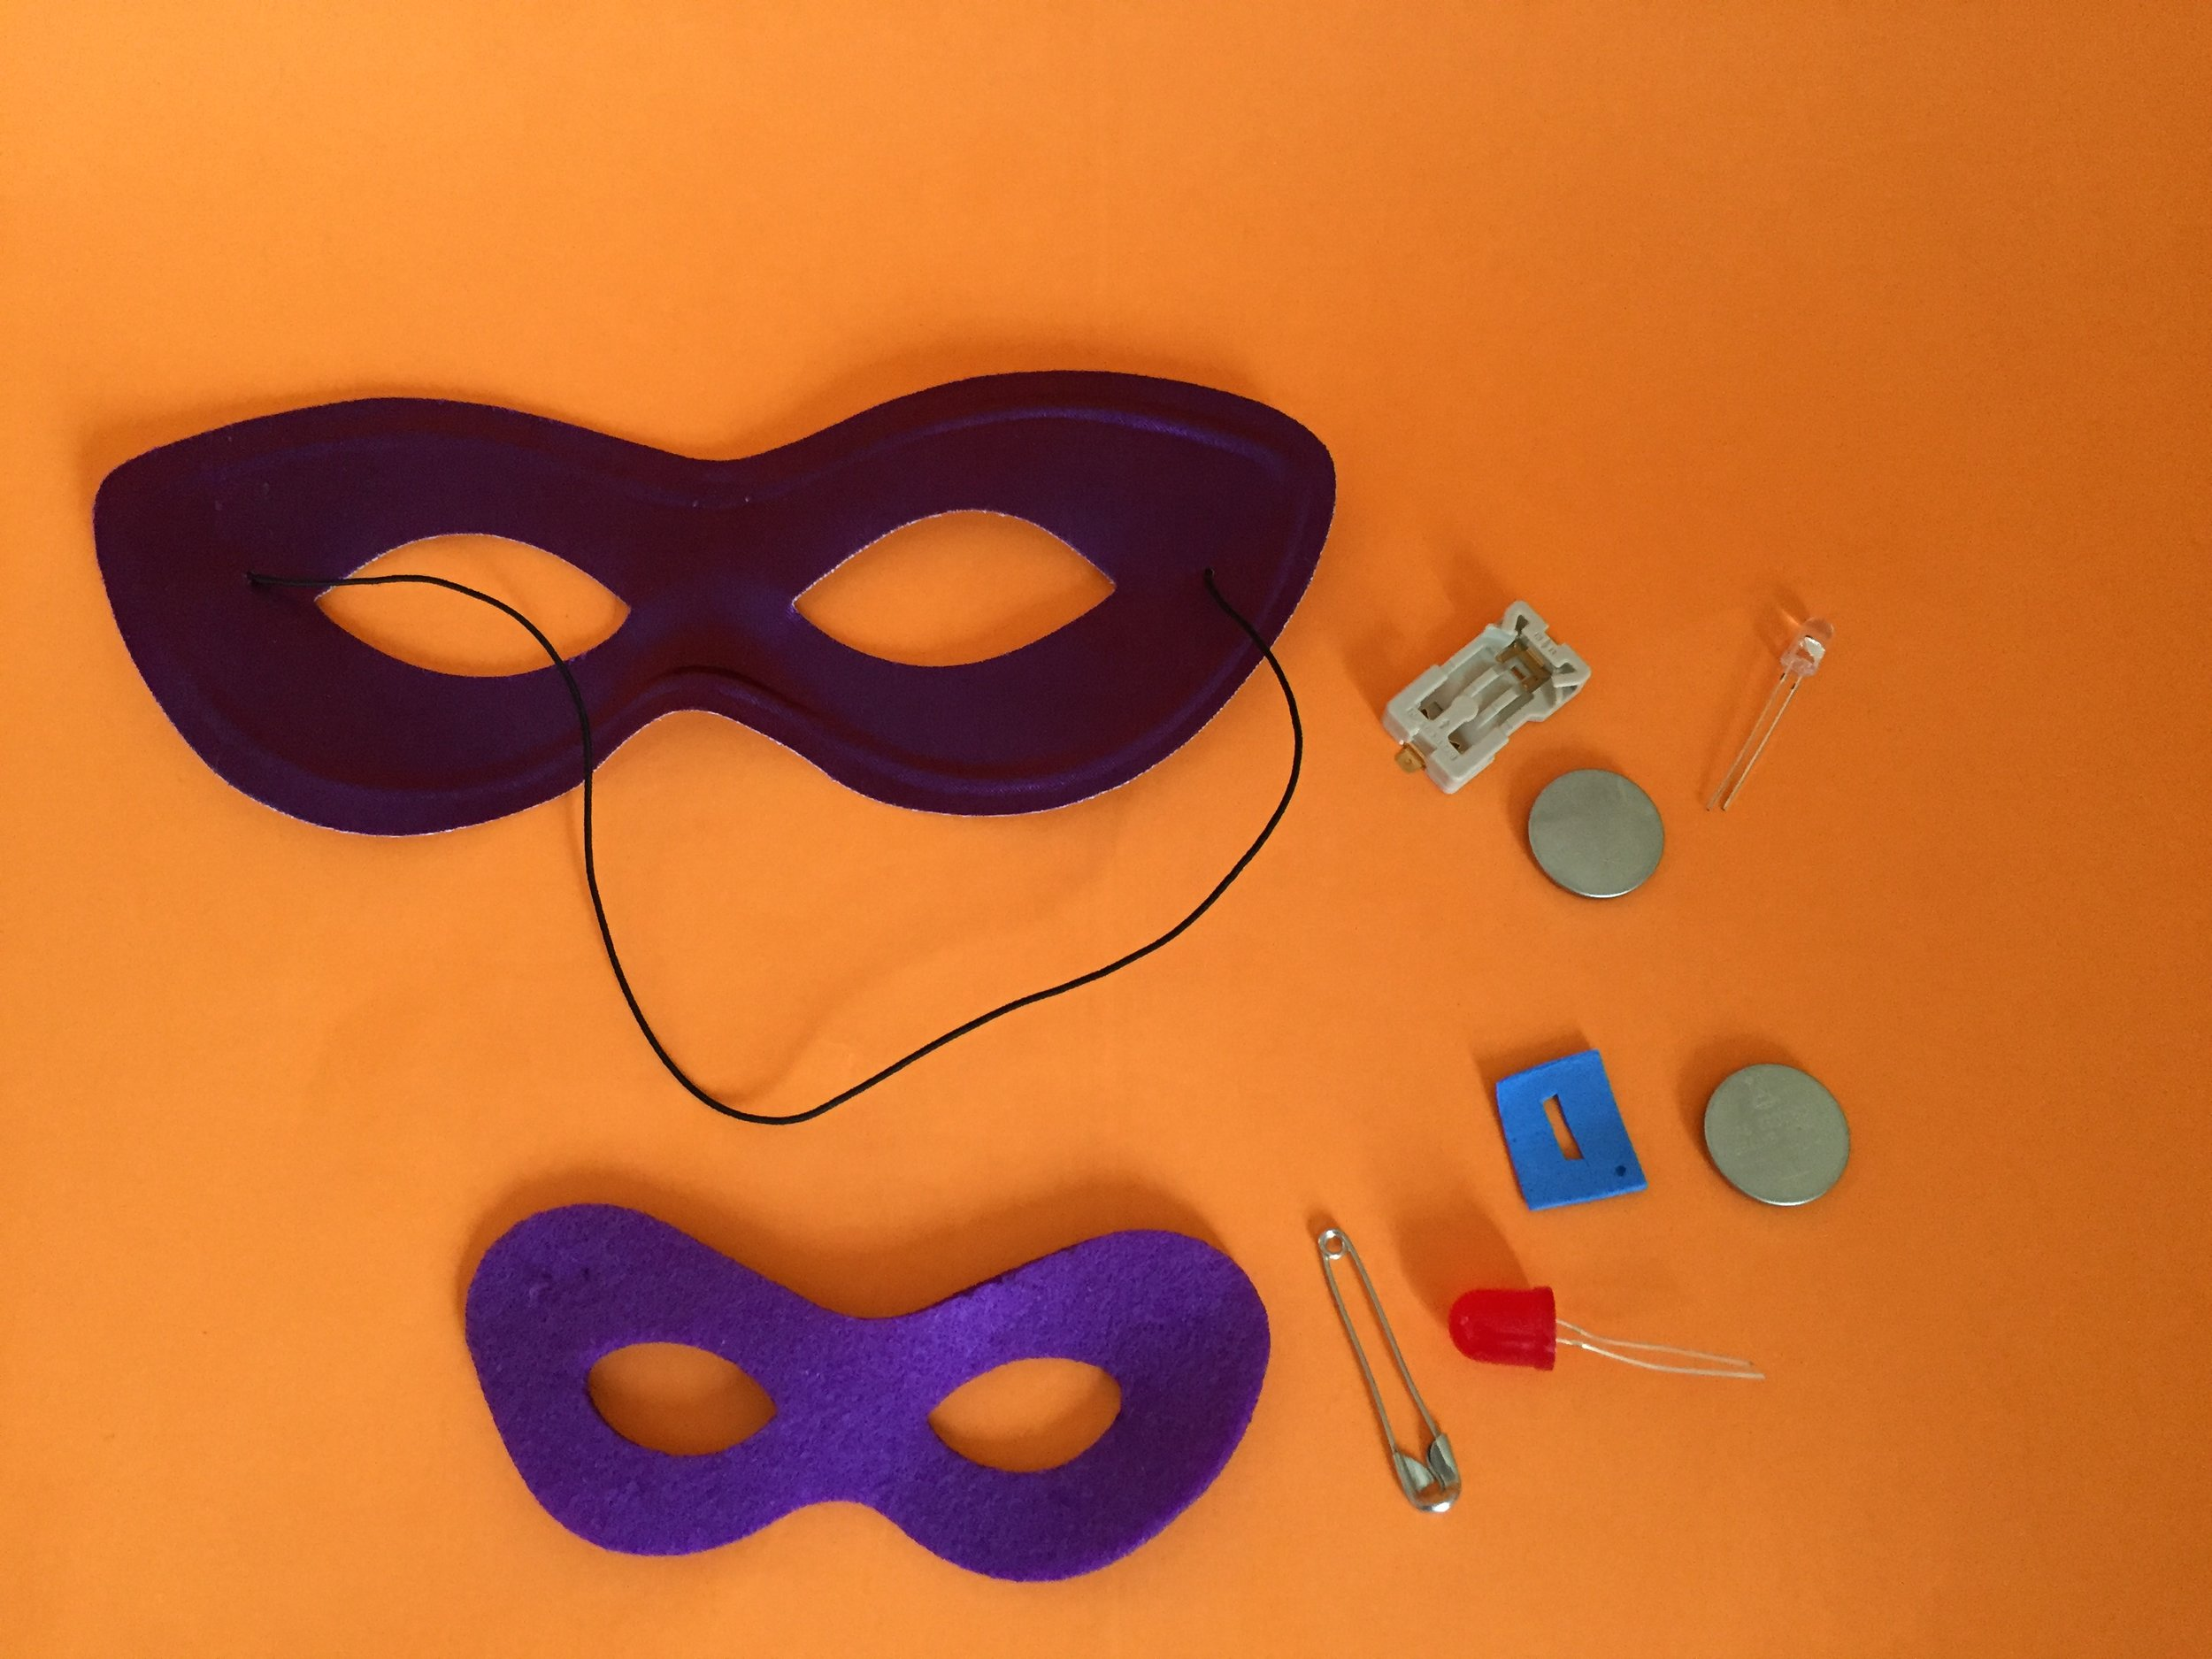 So all Superheroes need a mask...